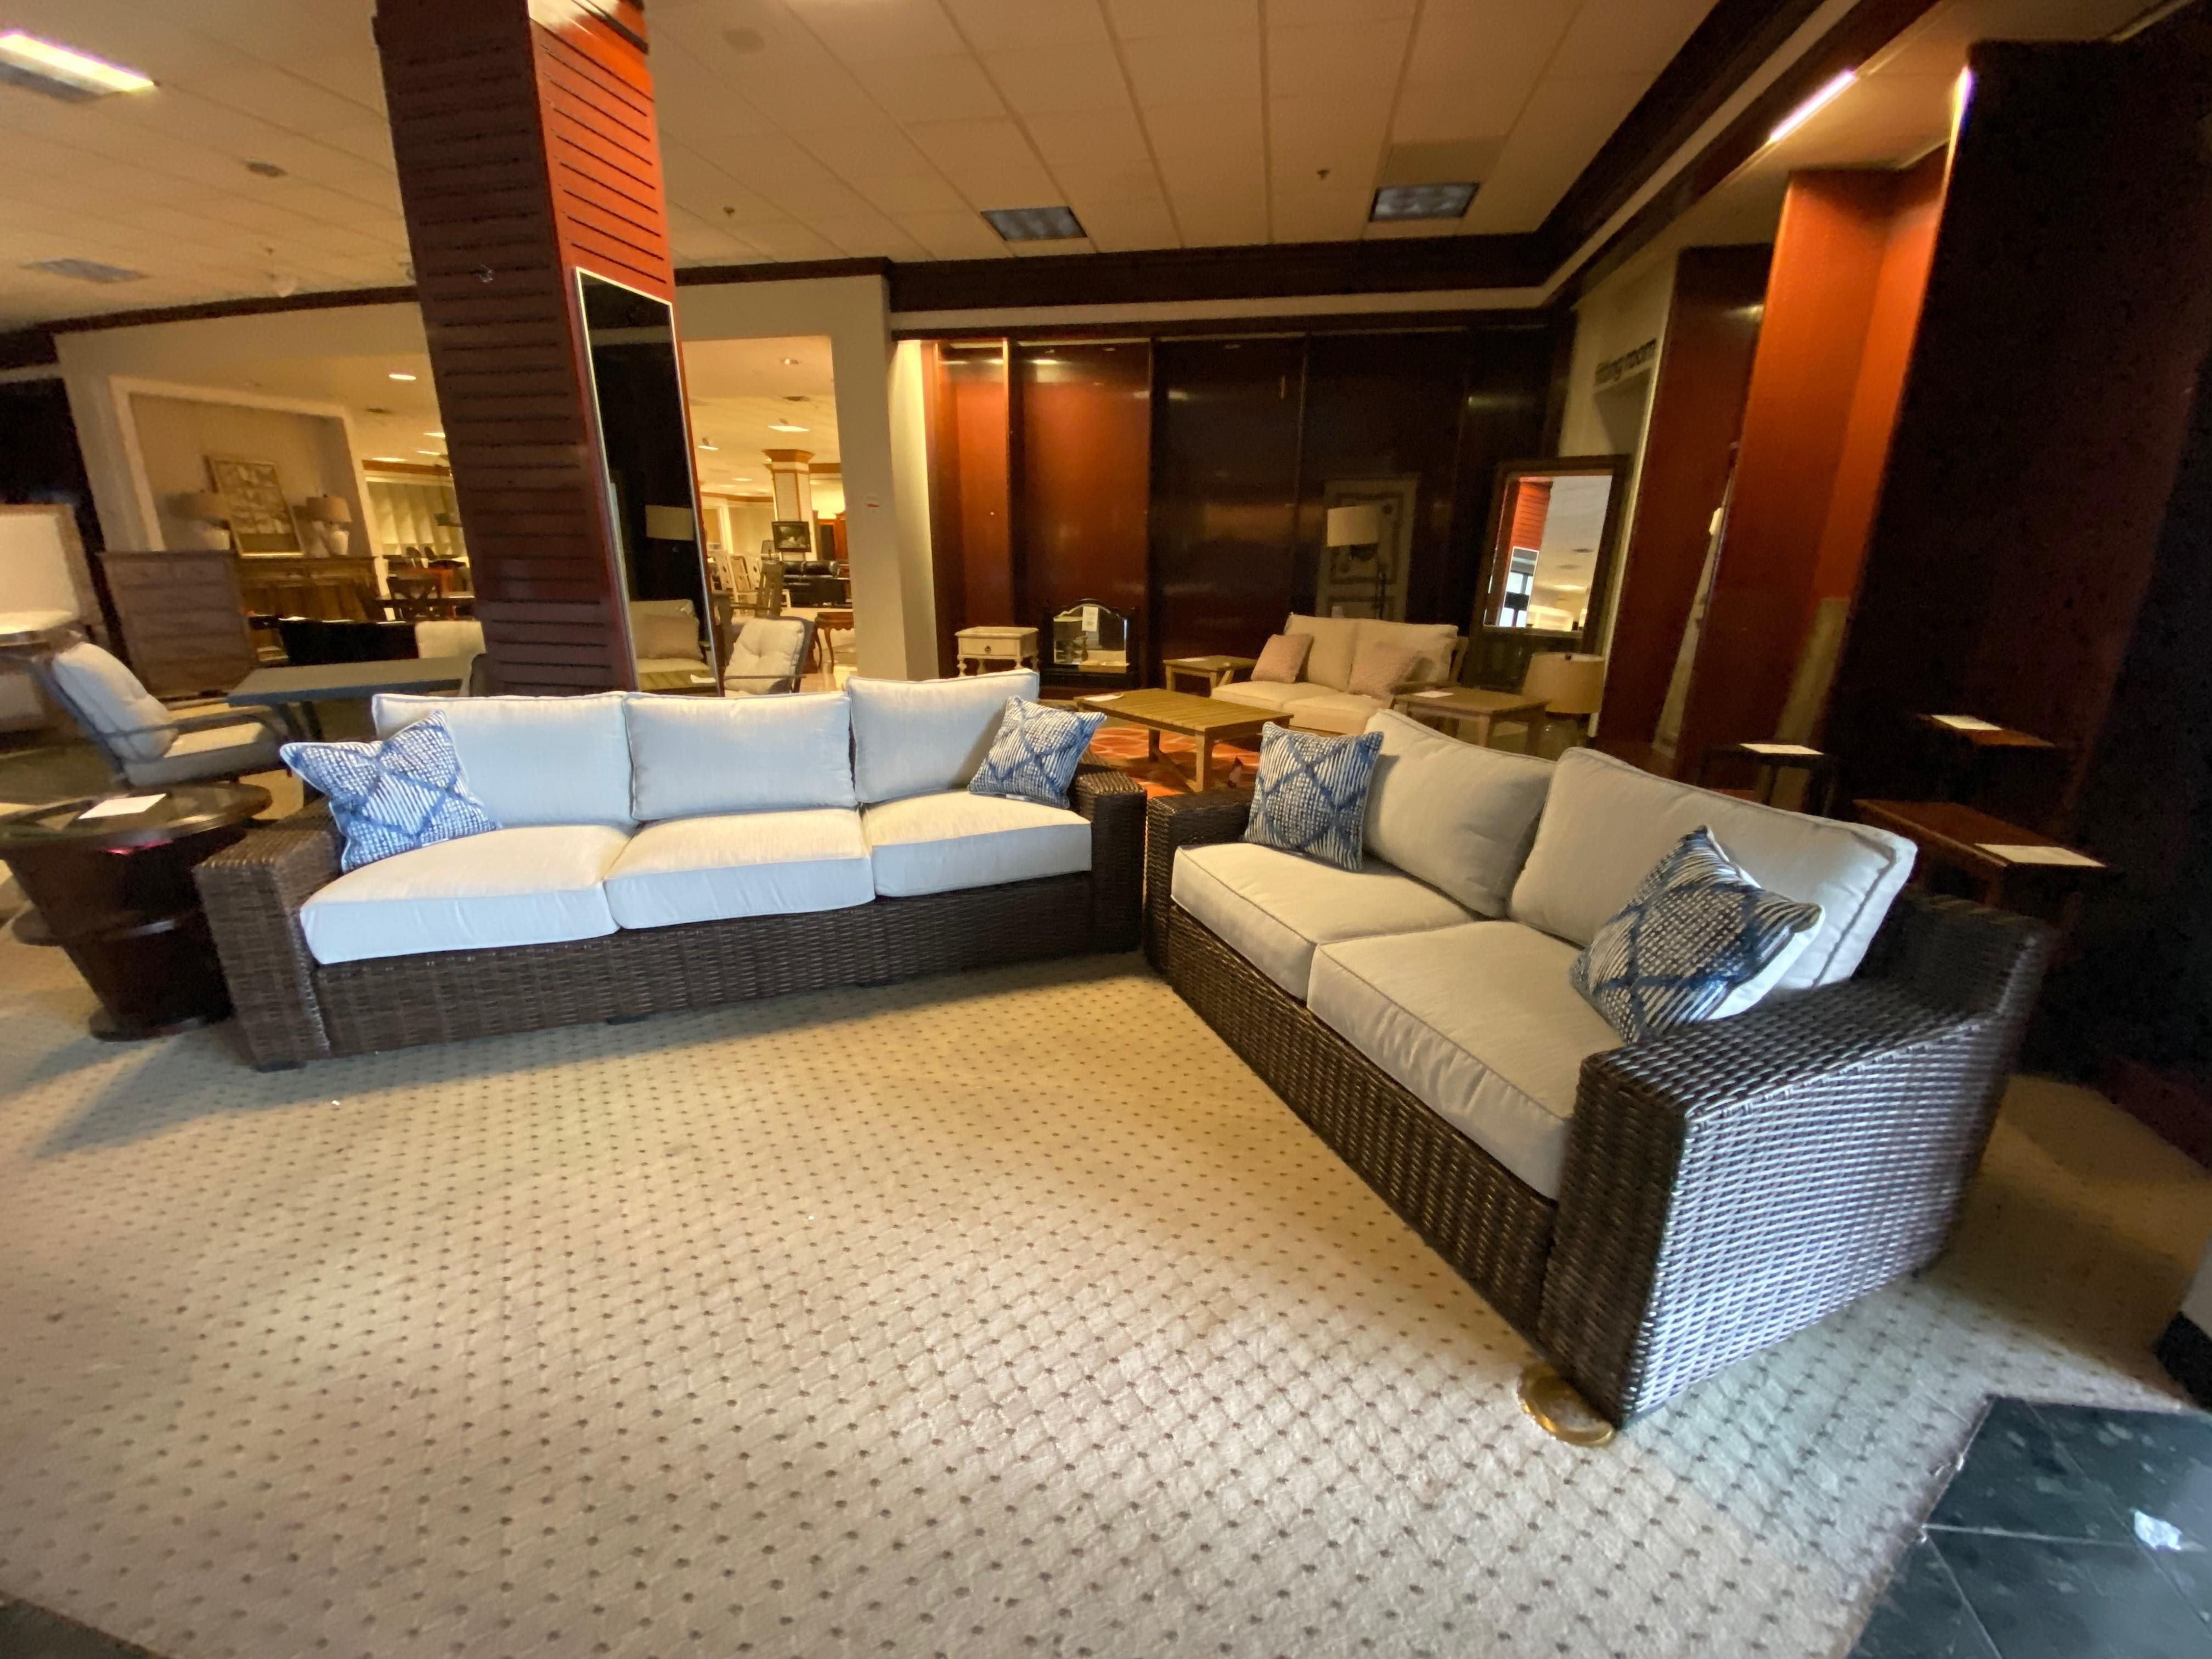 Shop Woodstock Furniture Inventory Clearance Sale This Friday Thru Sunday 1320 Bonita Furniture Affordable Living Room Furniture Discount Furniture Stores